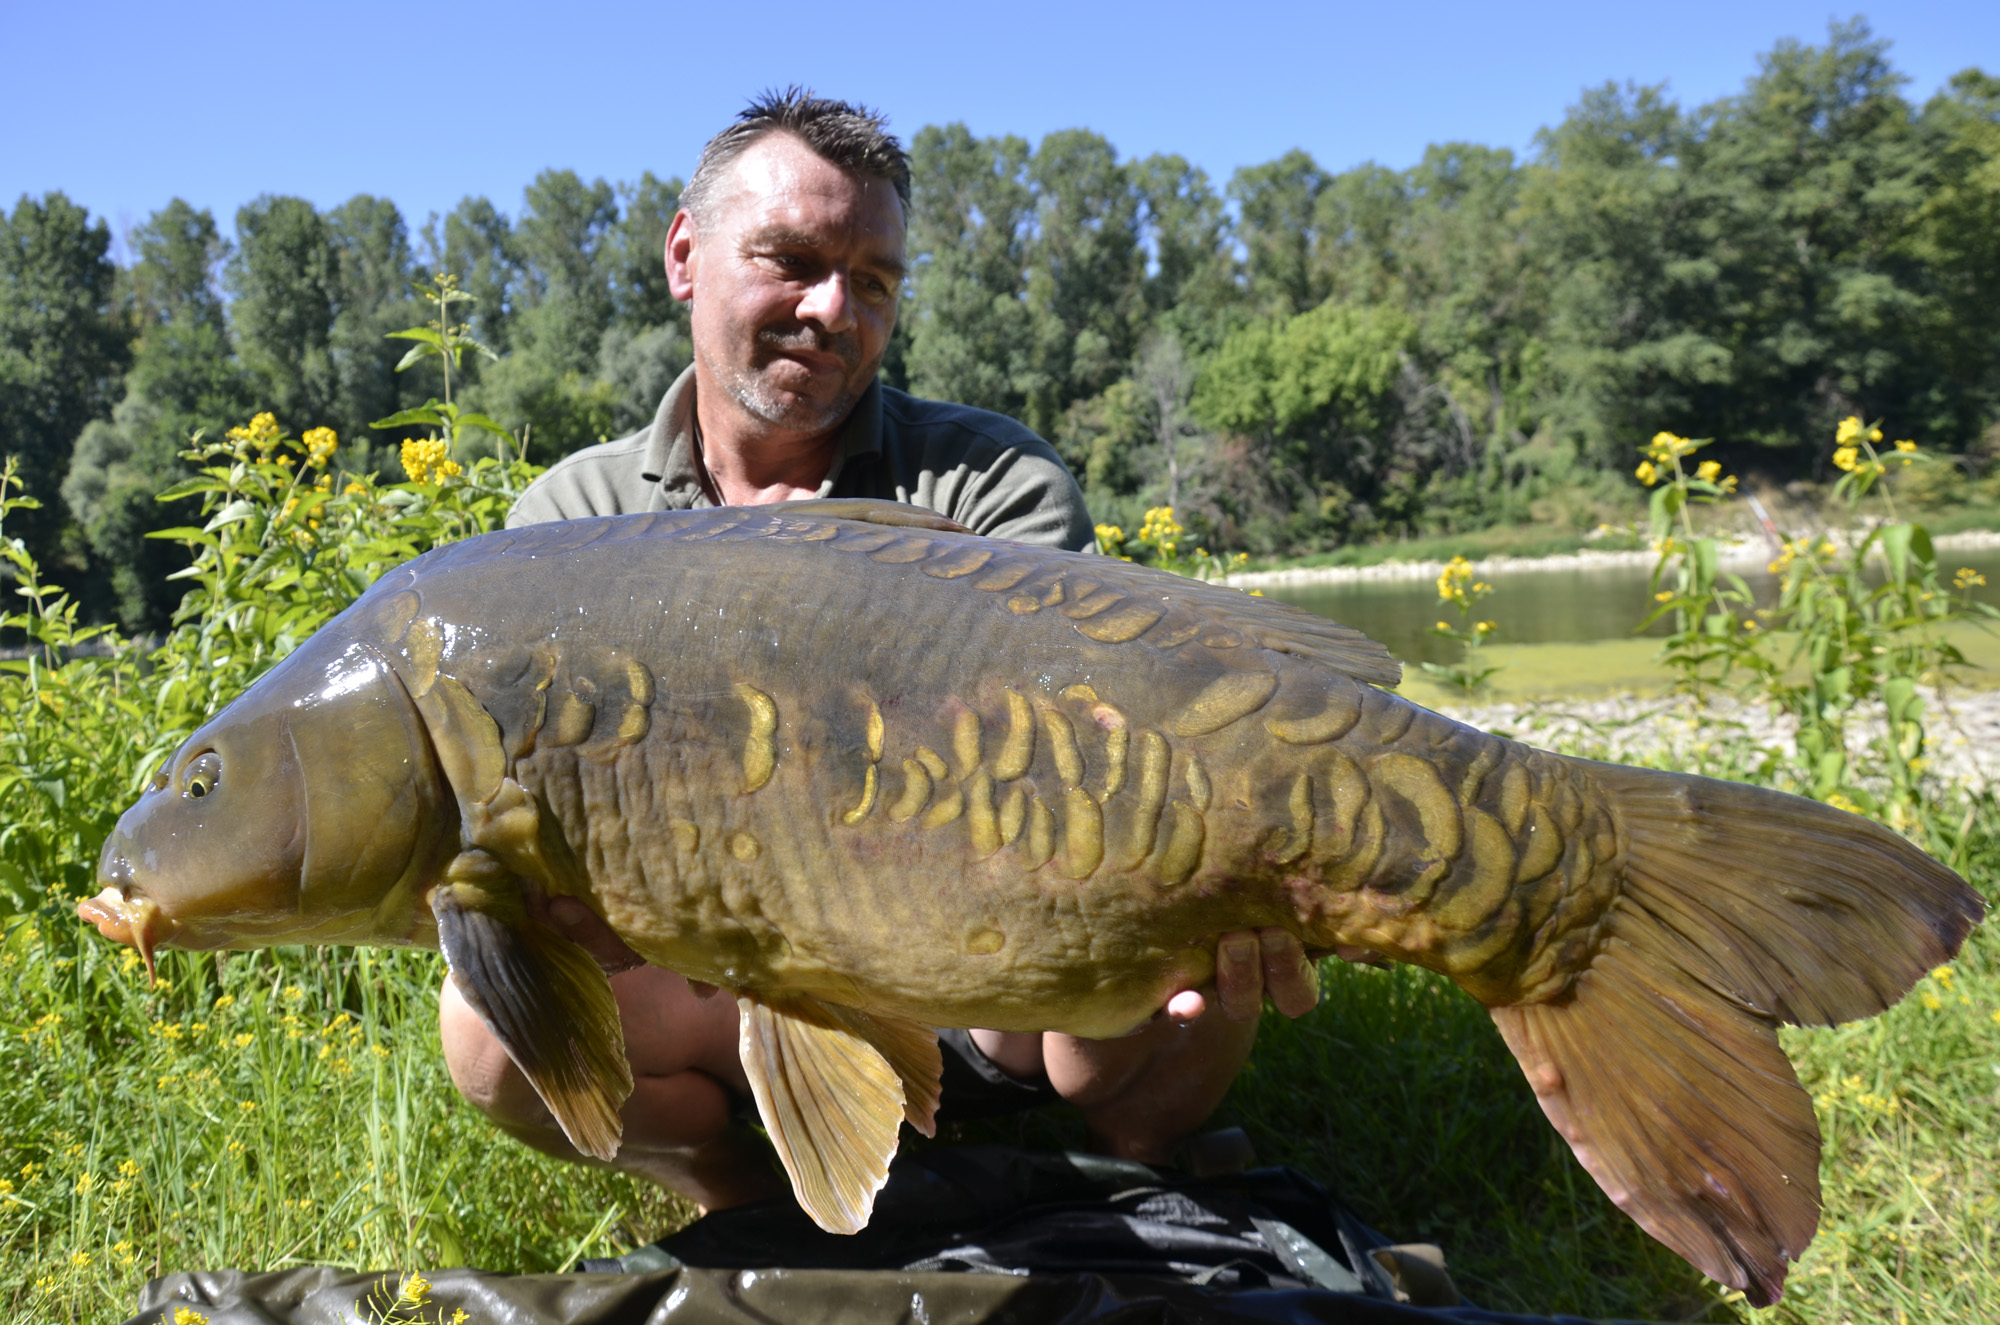 http://starbaits.com/fichiers/images/team/gallery/PARIS_Michel/9 PARIS Michel.JPG